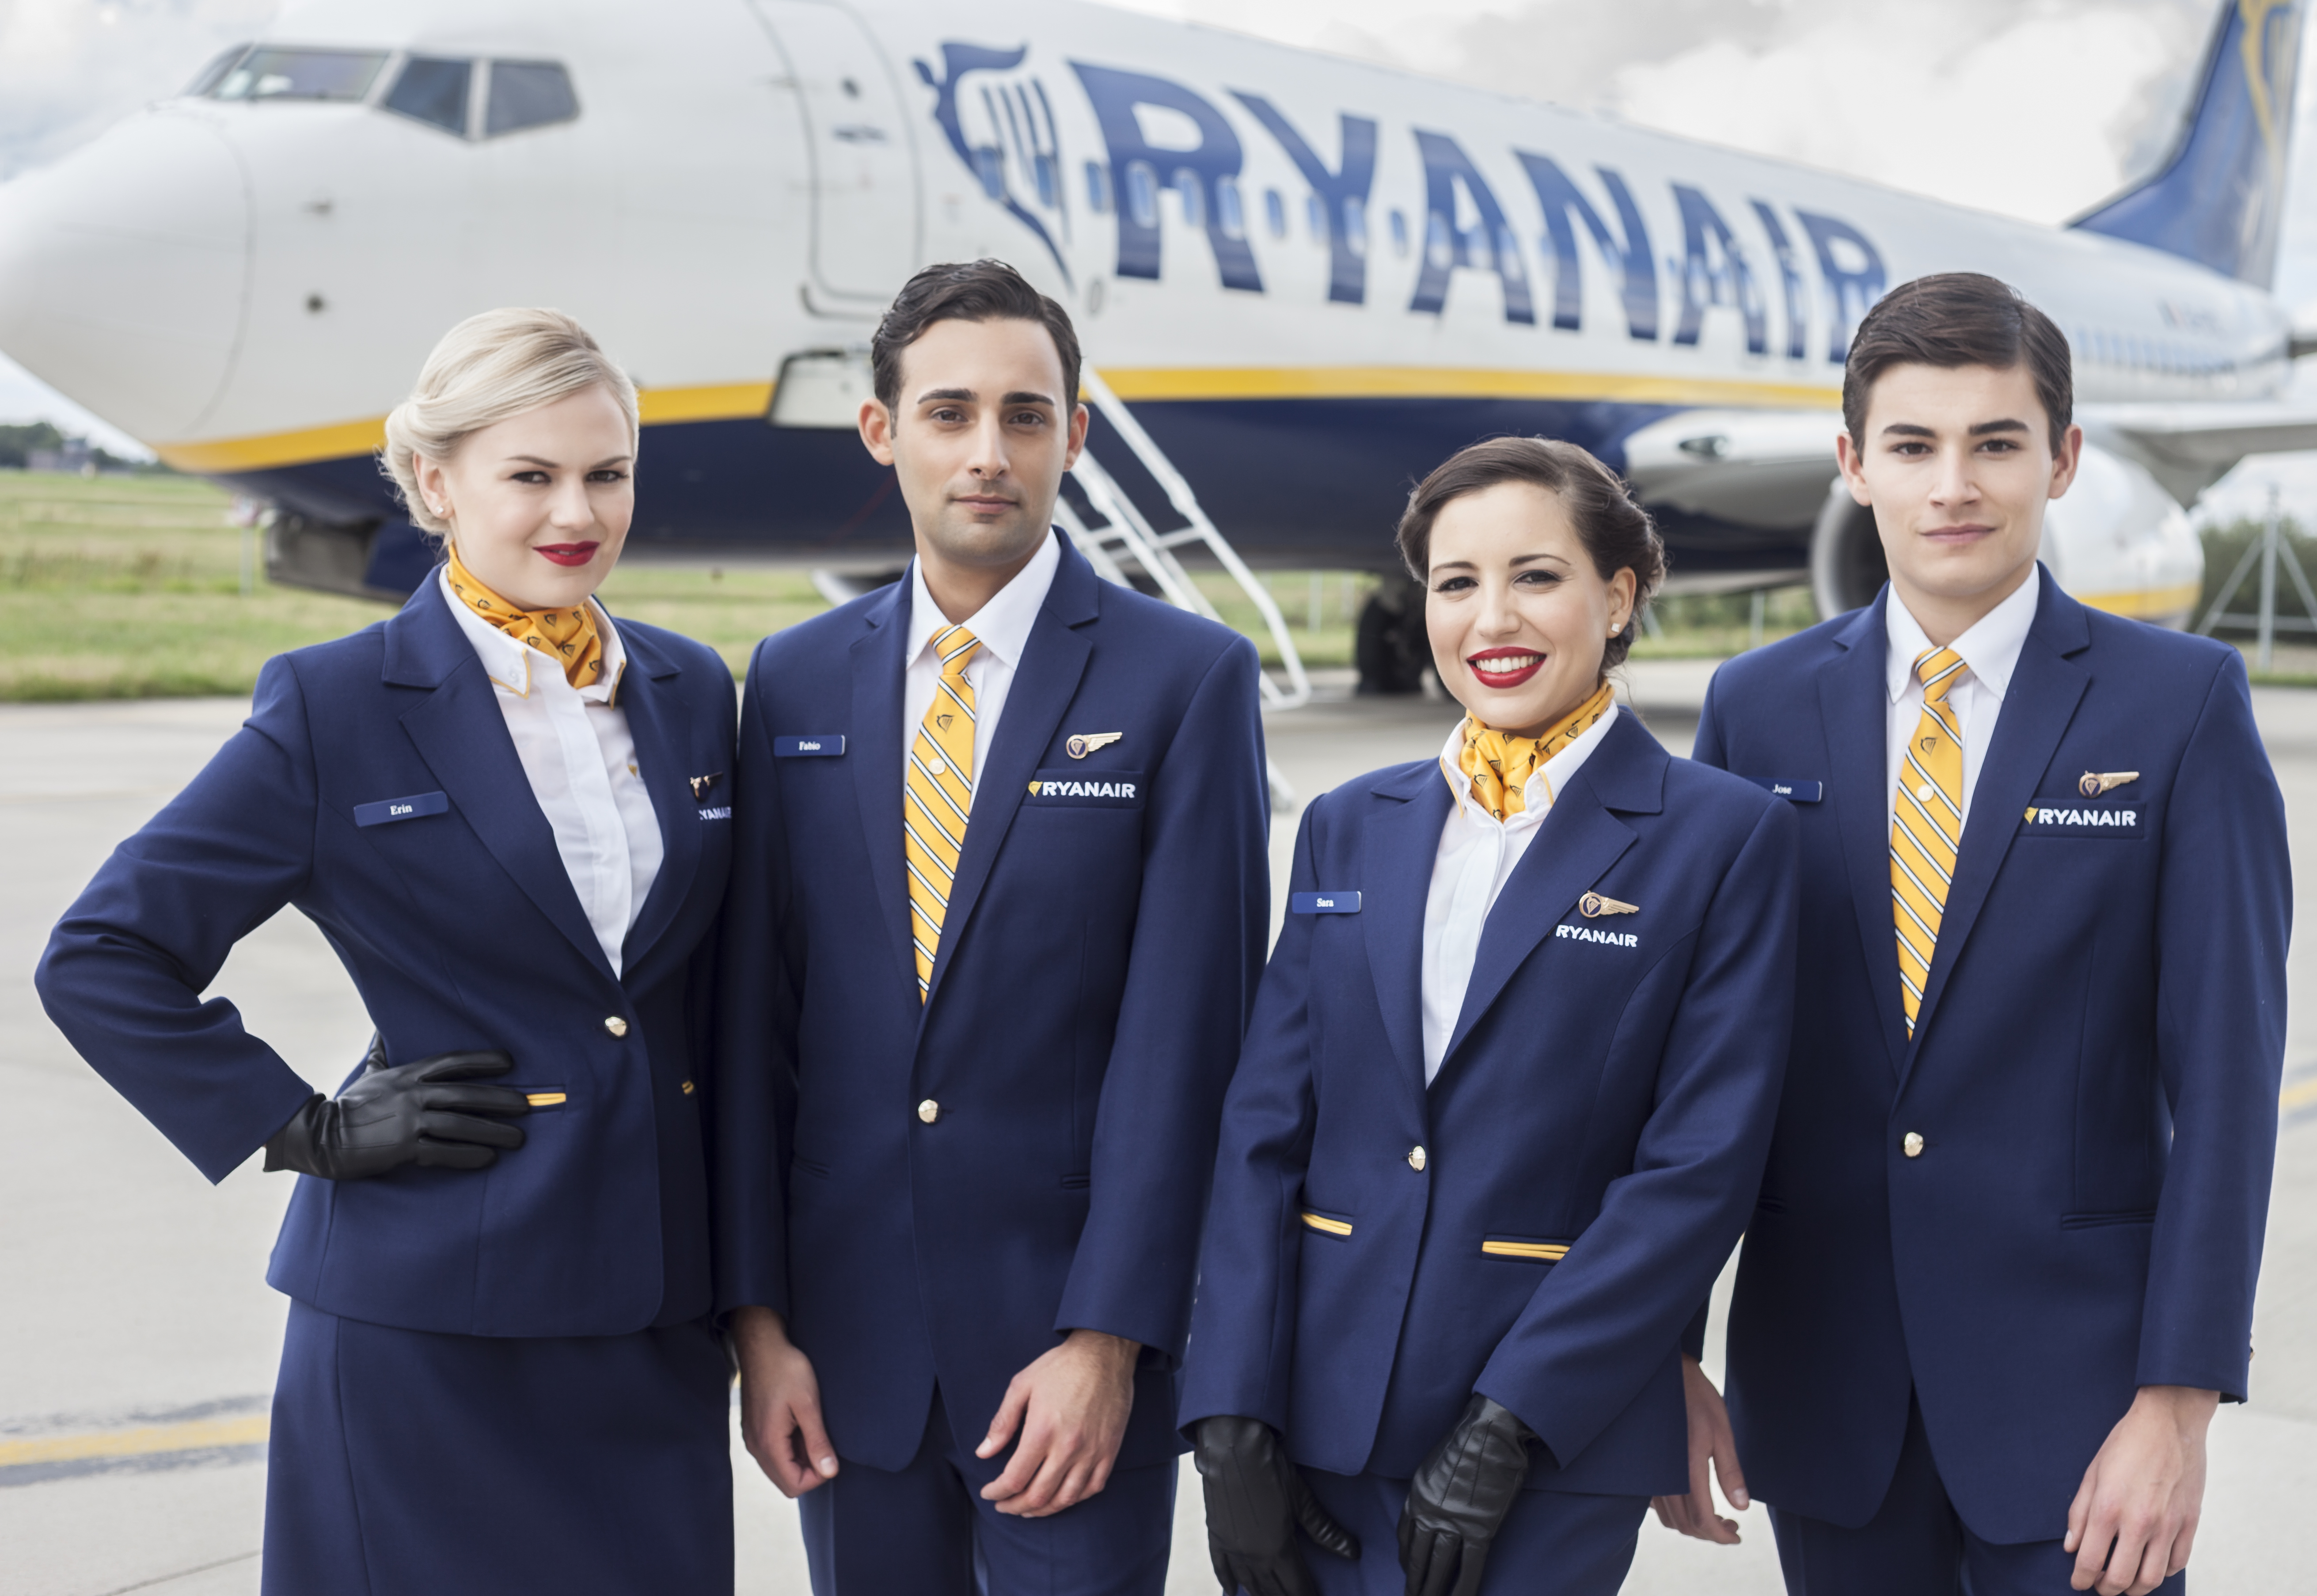 cabinn crew Reference: regulation (eu) no 1178/2011 on aircrew, part-cc eu-ops attestations of safety training held by active cabin crew members complying with applicable training and recency requirements are considered equivalent to the new cabin crew attestations (cca) until they can be replaced by a cca.